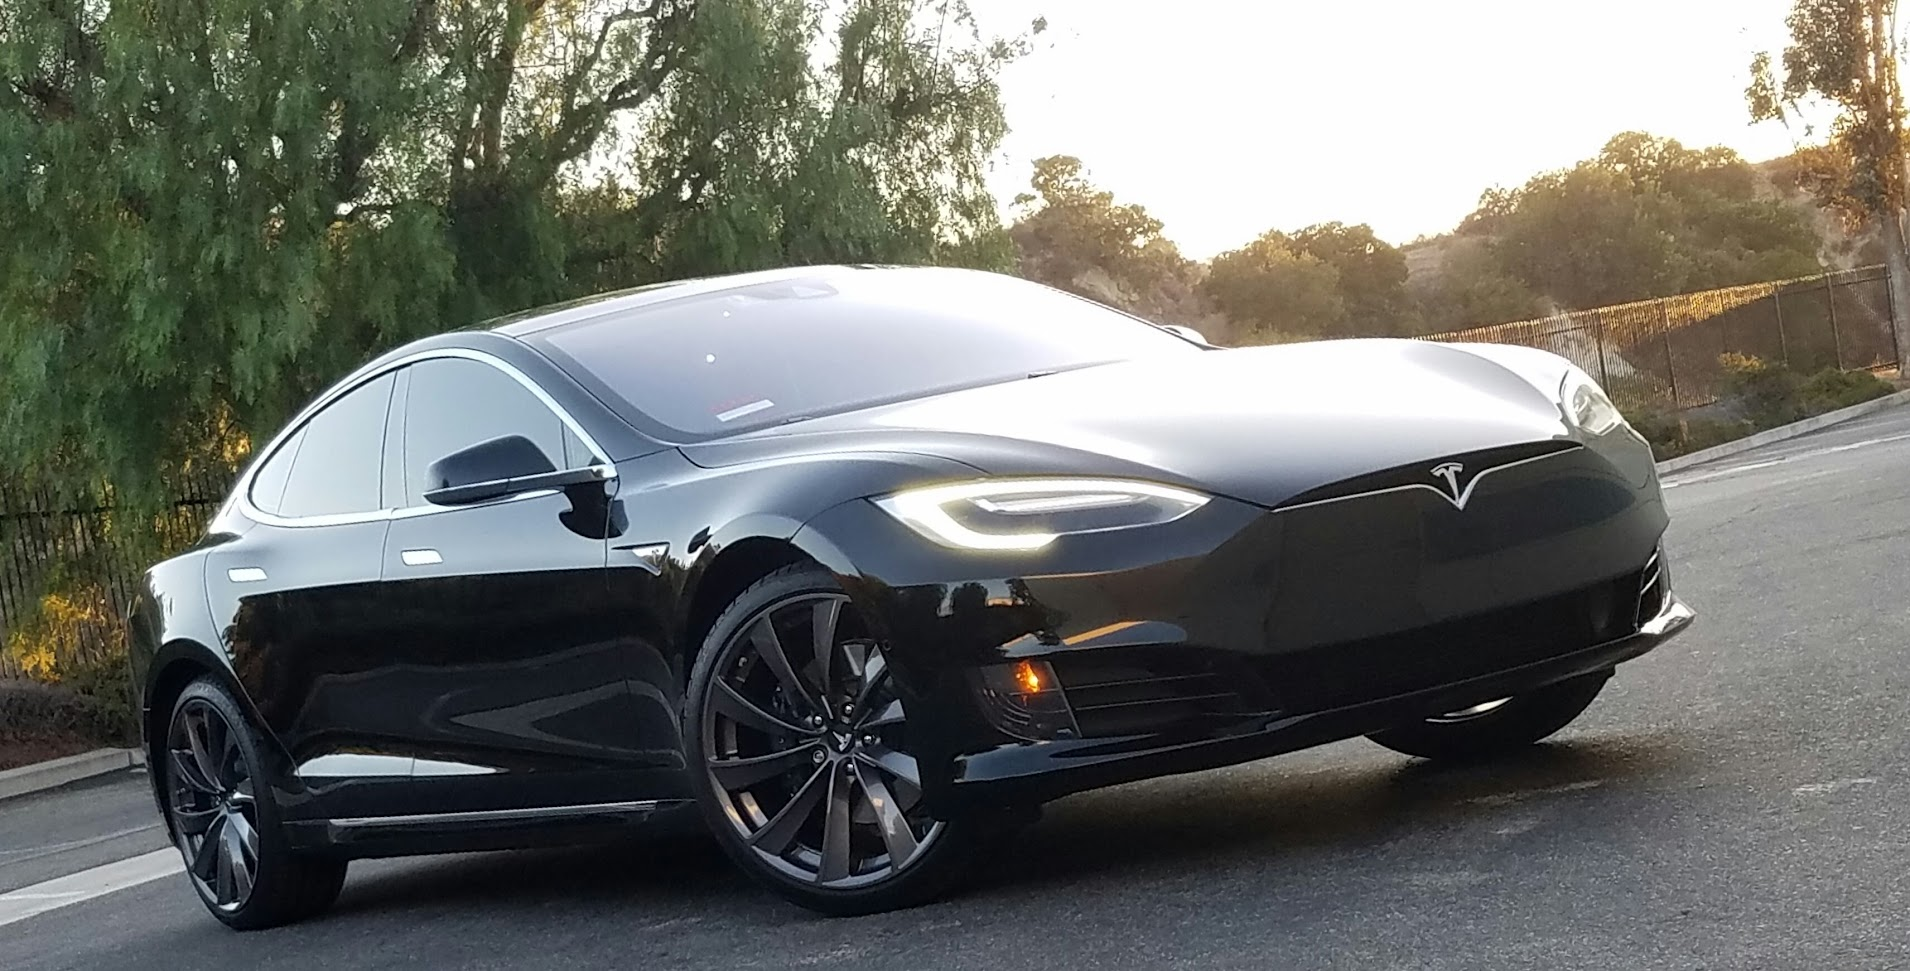 Photoshoot pics of black Refresh Model S | Tesla Motors Club